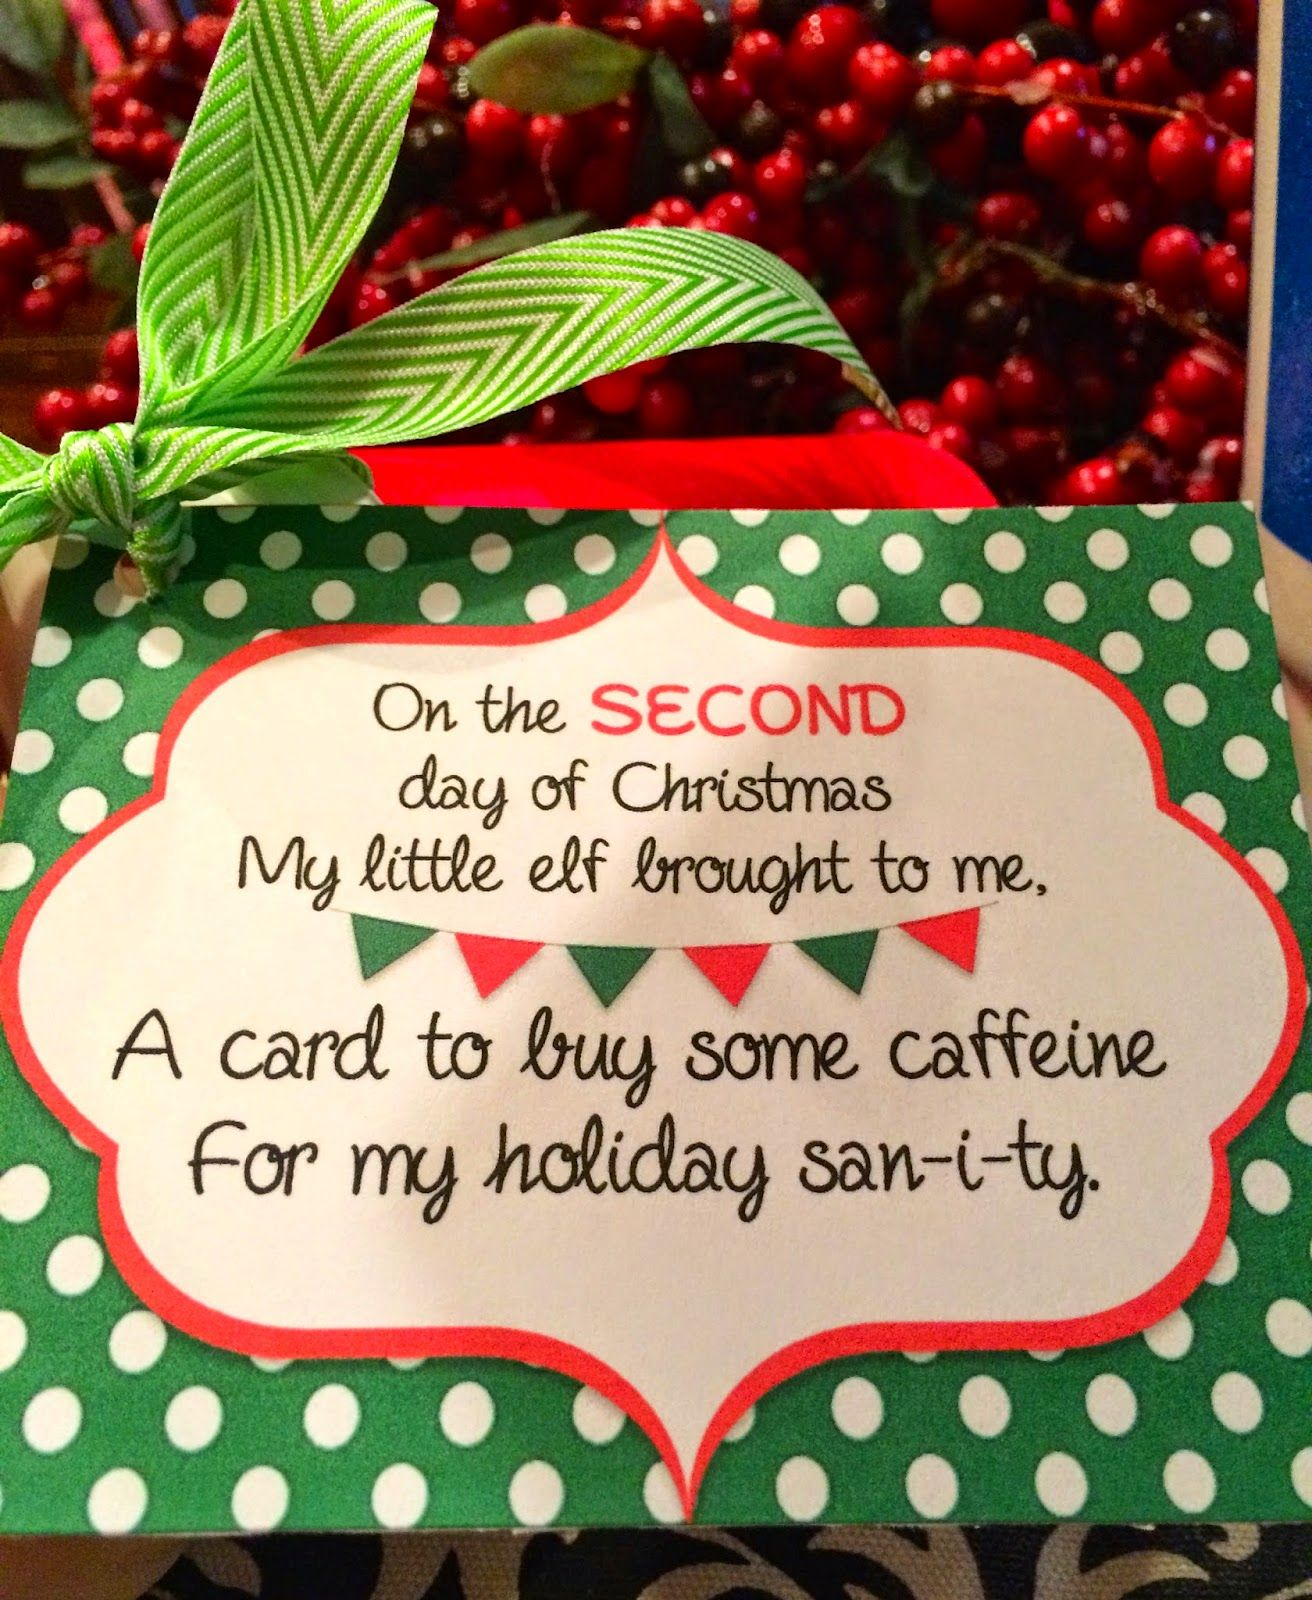 12 days of christmas for teachers days 1 4 from marci coombs blog [ 1312 x 1600 Pixel ]